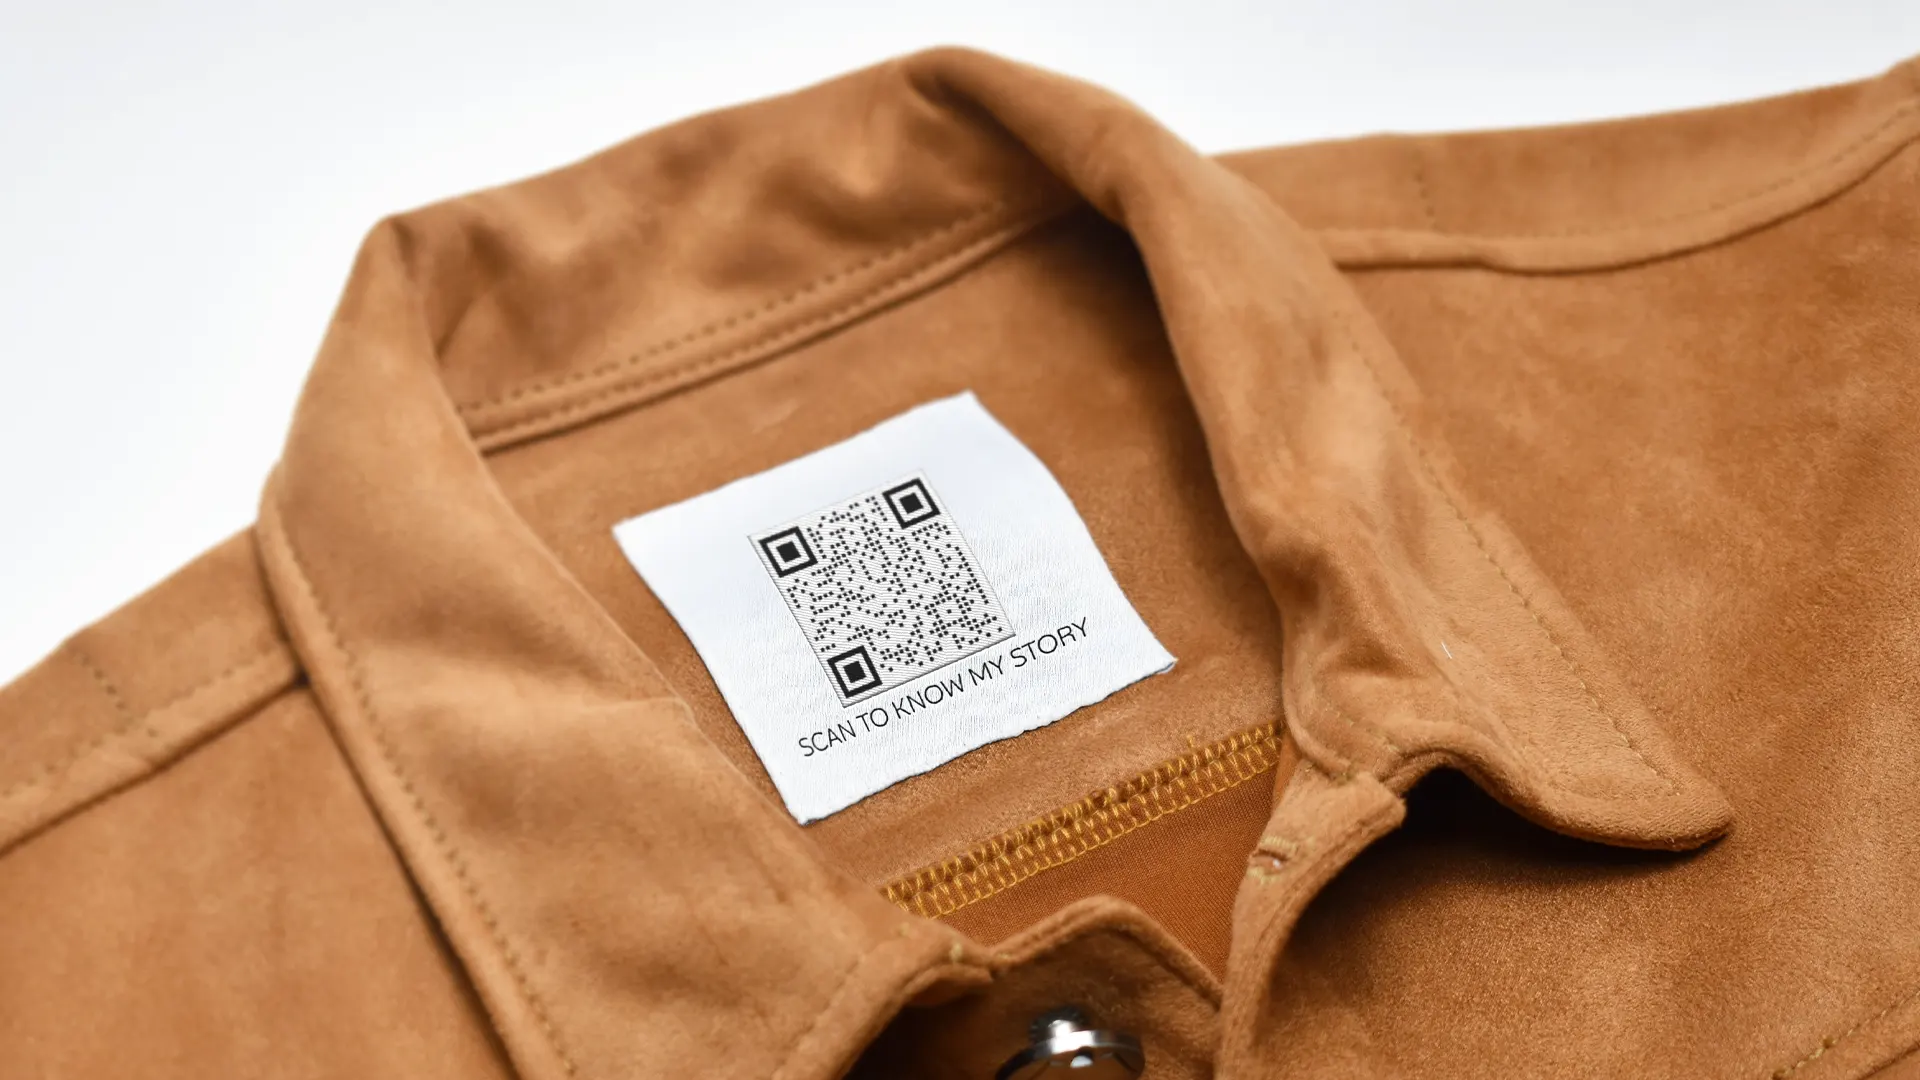 creative uses of qr codes clothes